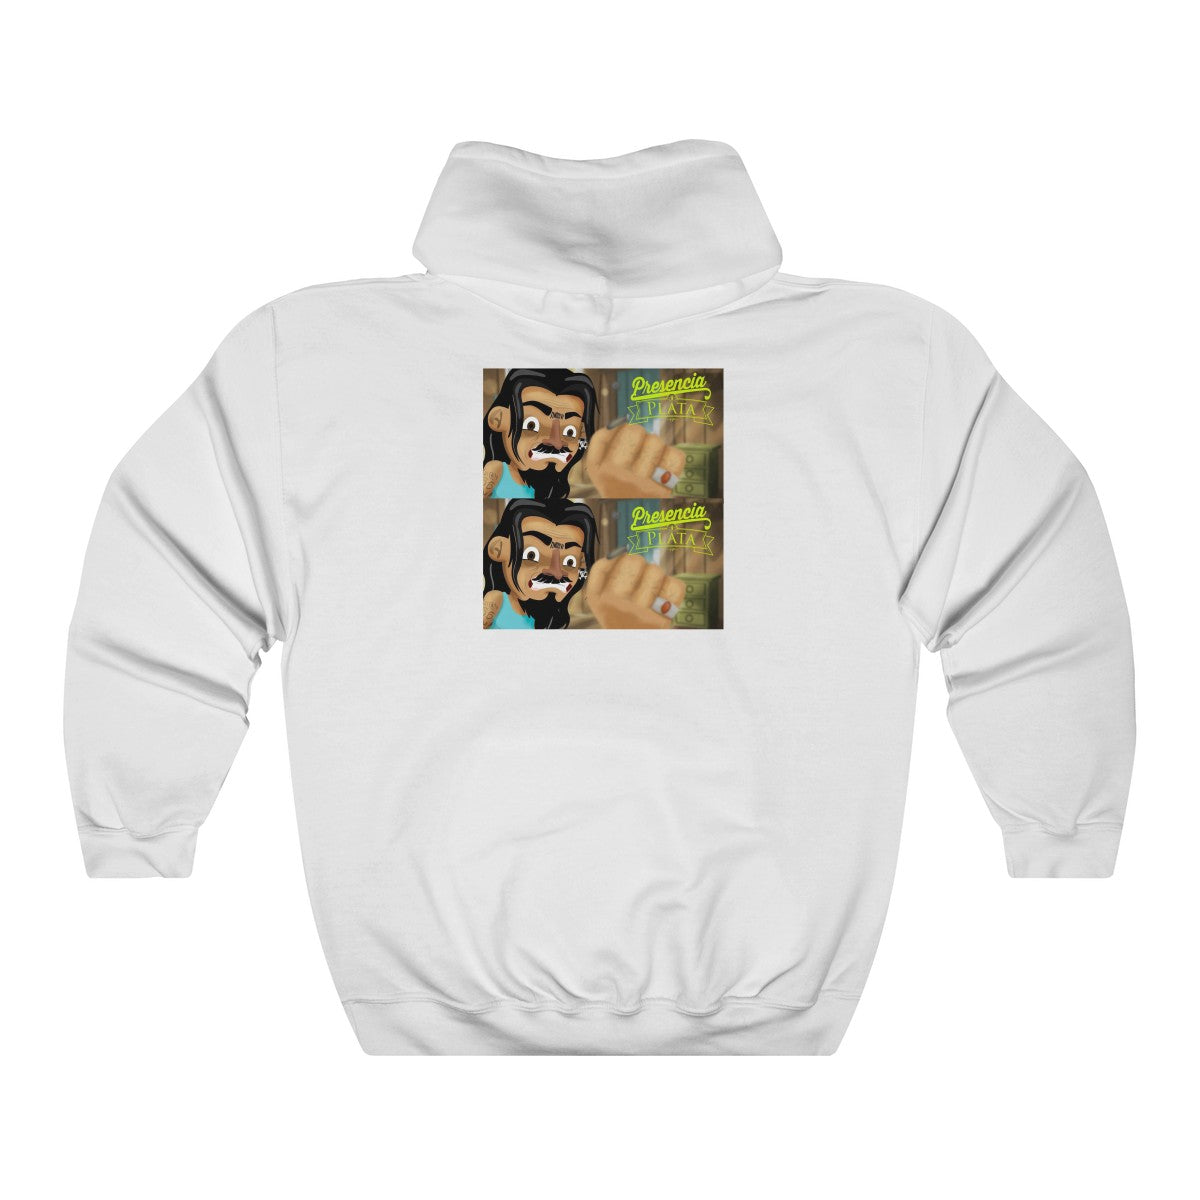 QUERUBÍN REBELDE Design - Hooded Sweatshirt